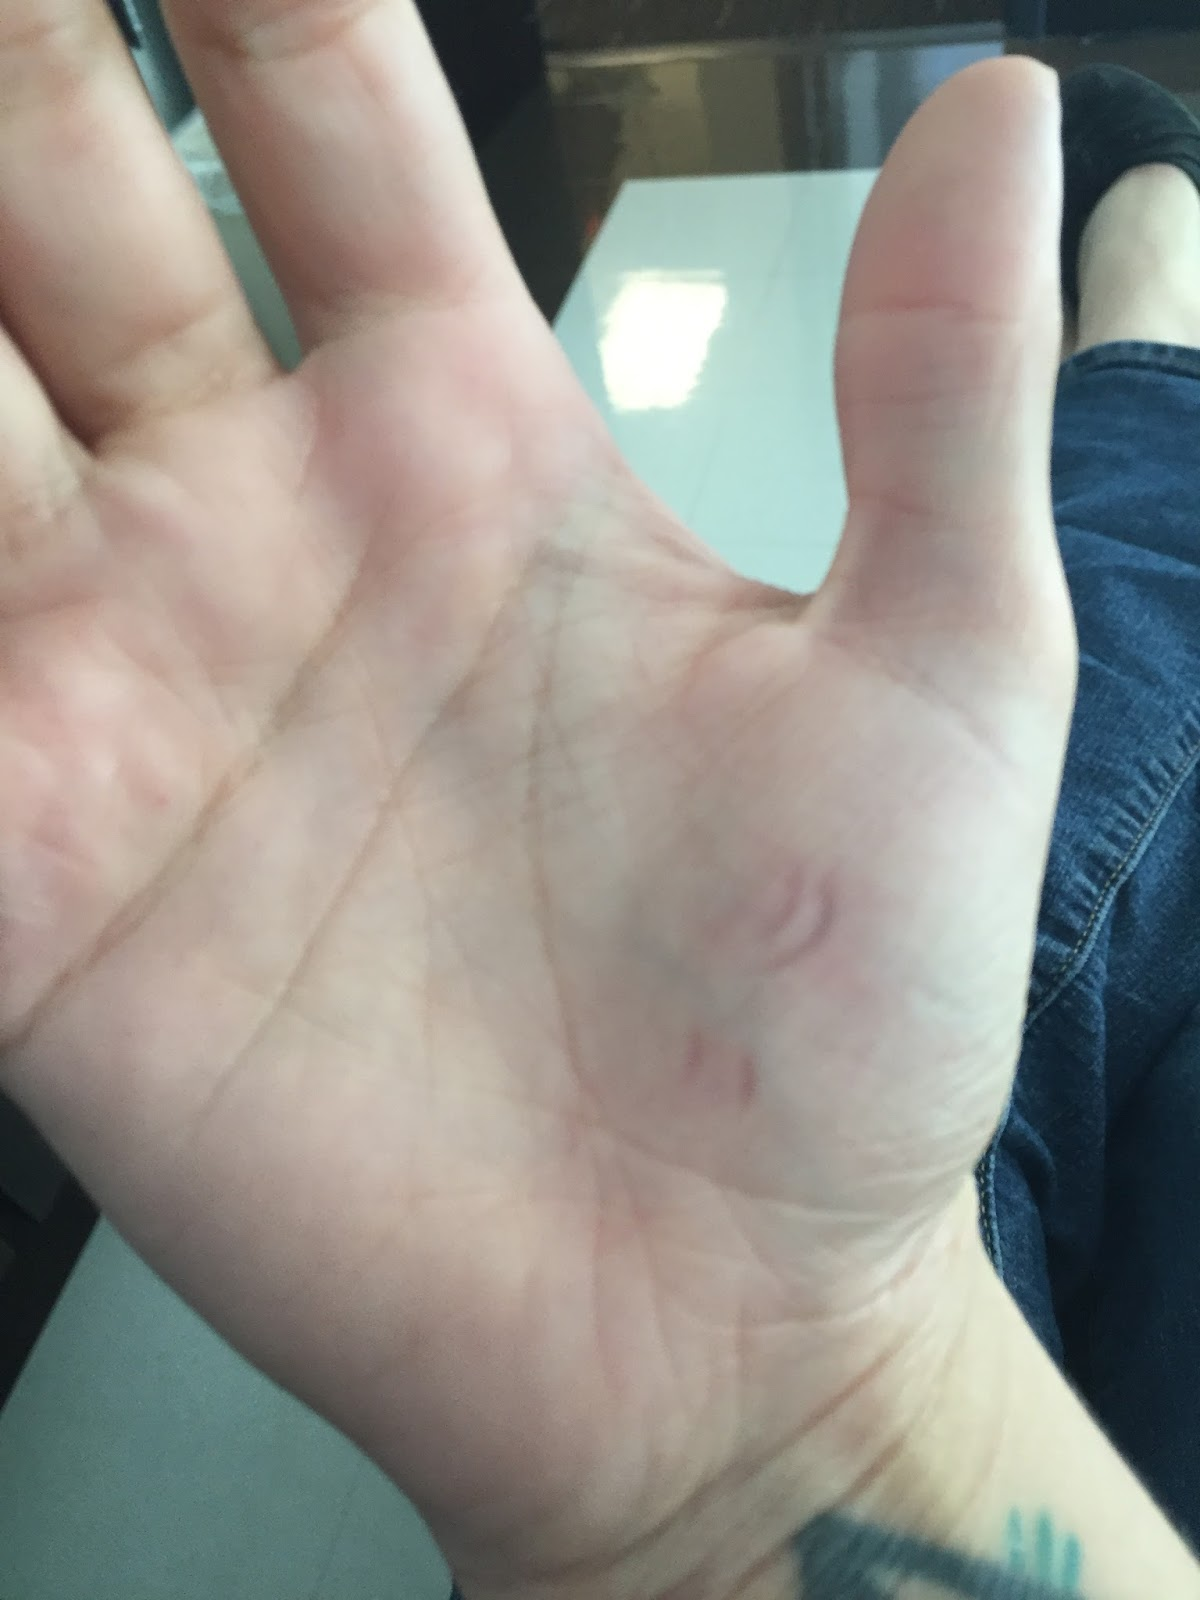 And Here I Am Waiting For My Next Injection As Well The Marks Made While Digging Nails Into Hand Because Of Pain